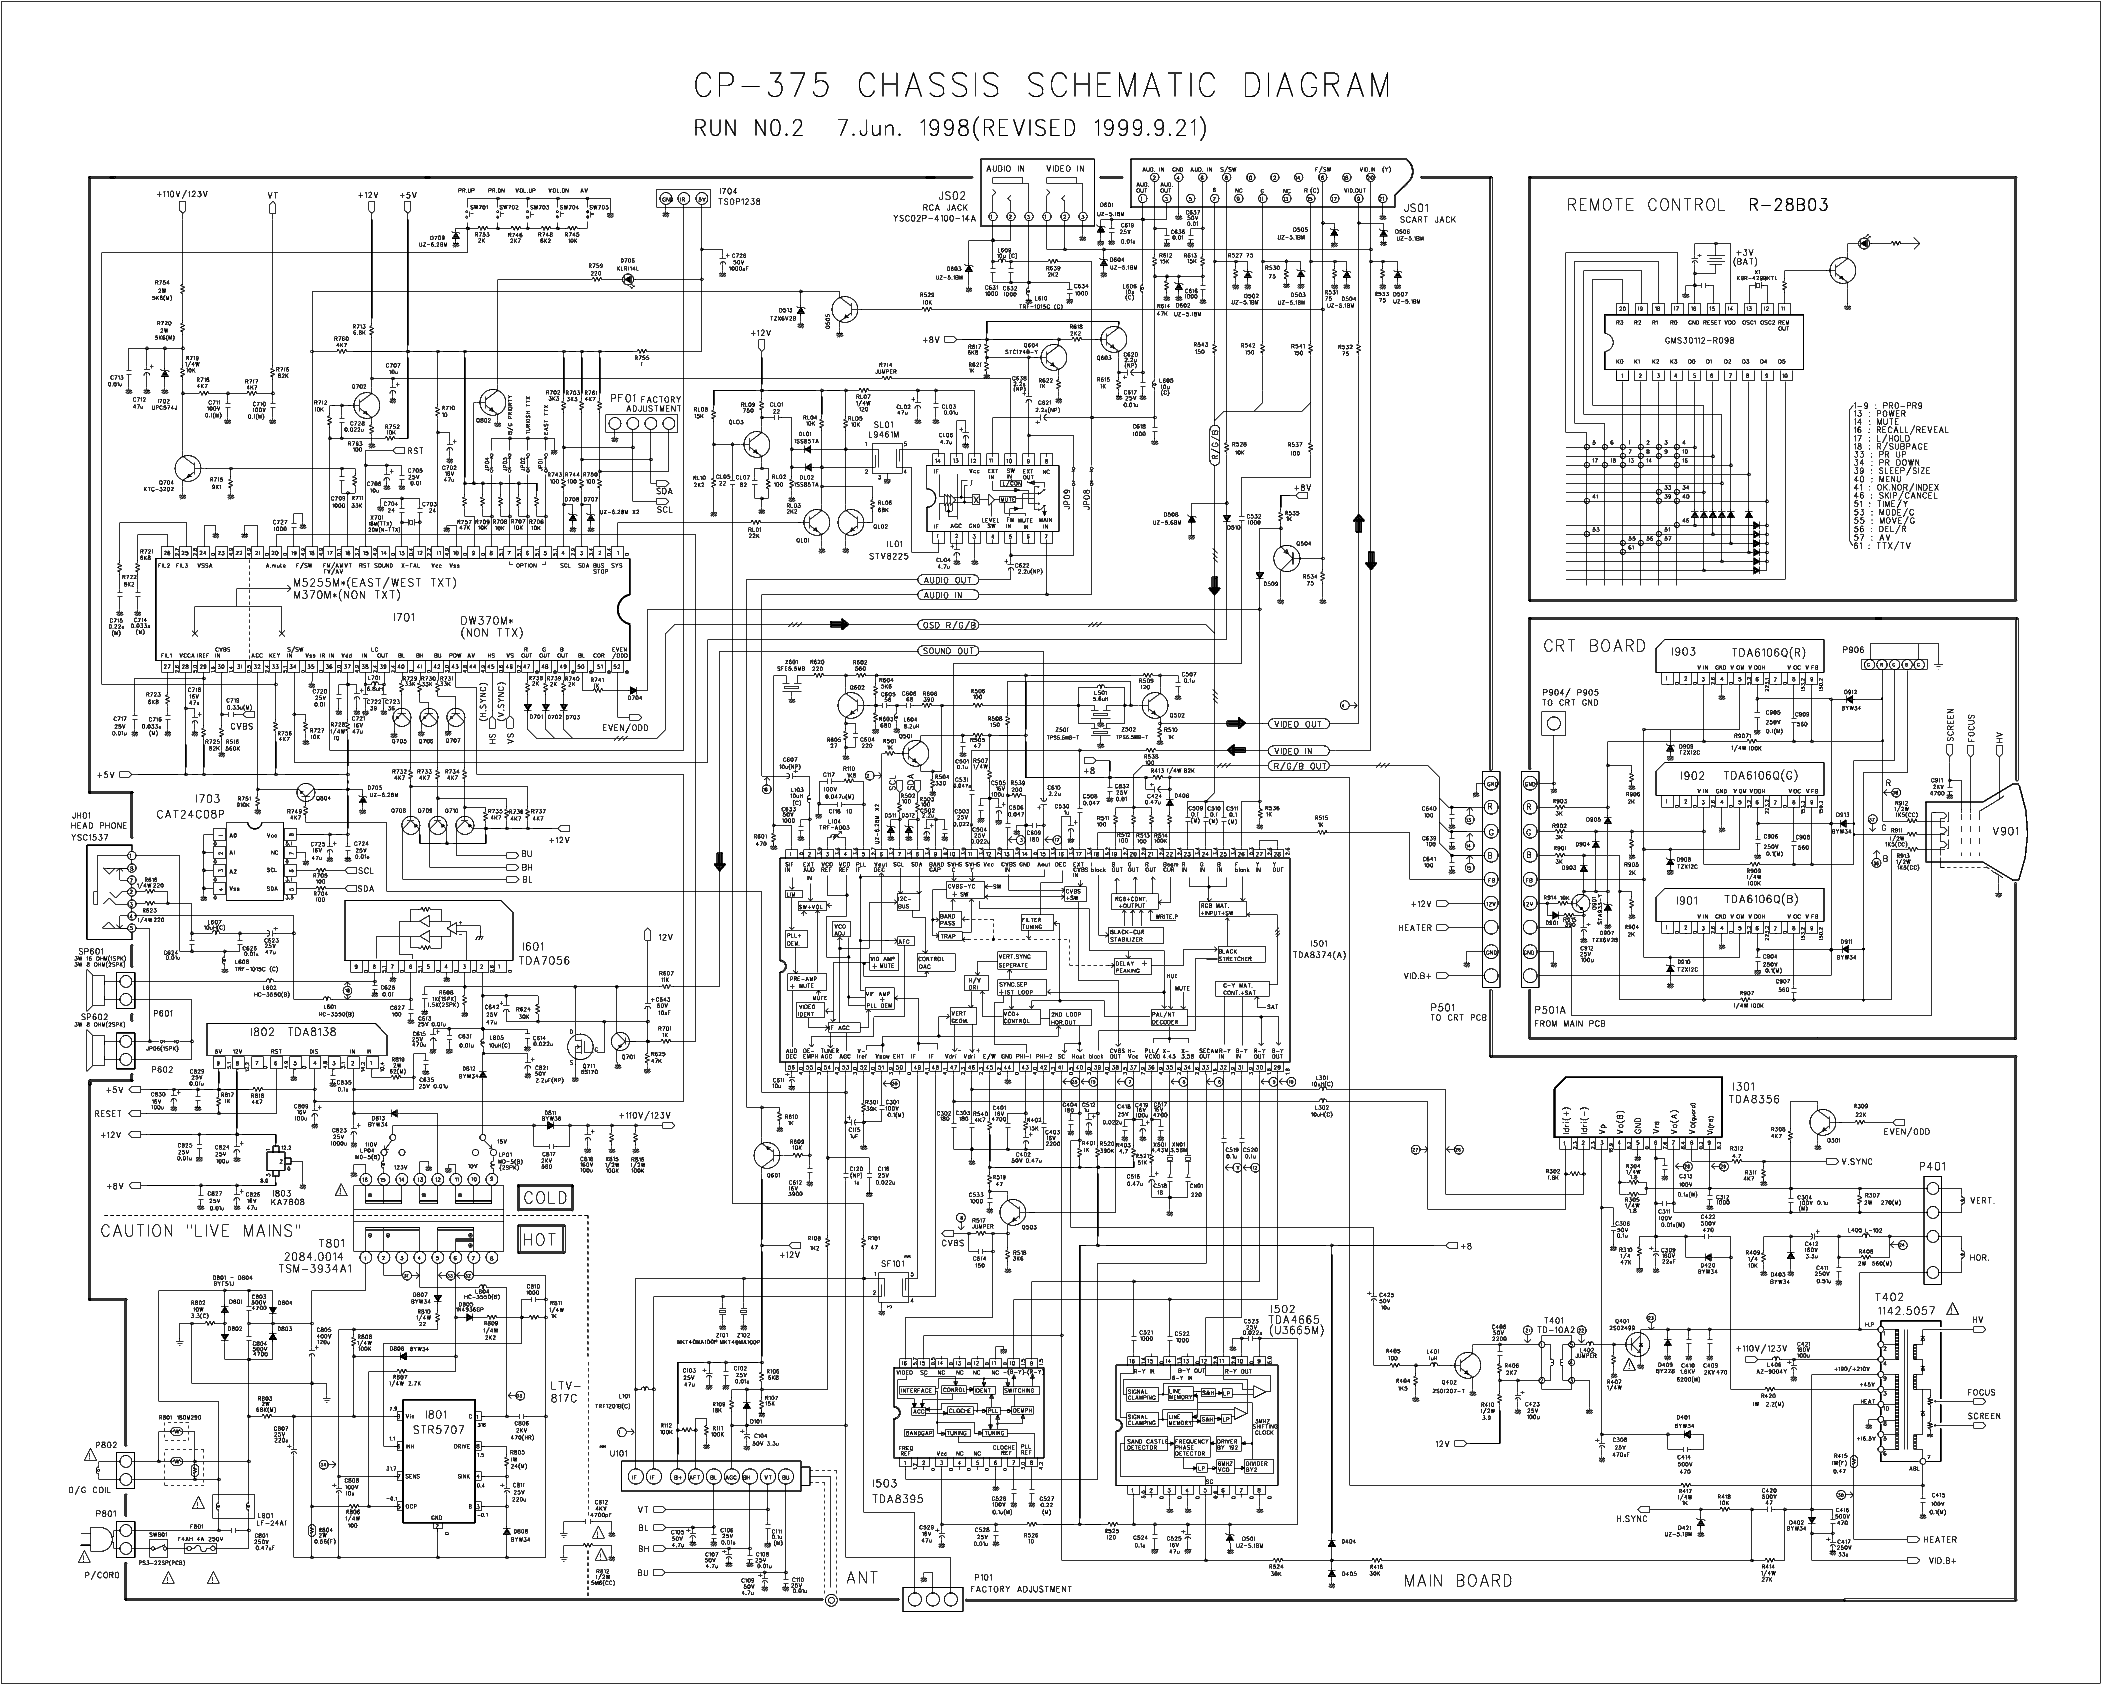 DAEWOO CP-375 Service Manual download, schematics, eeprom